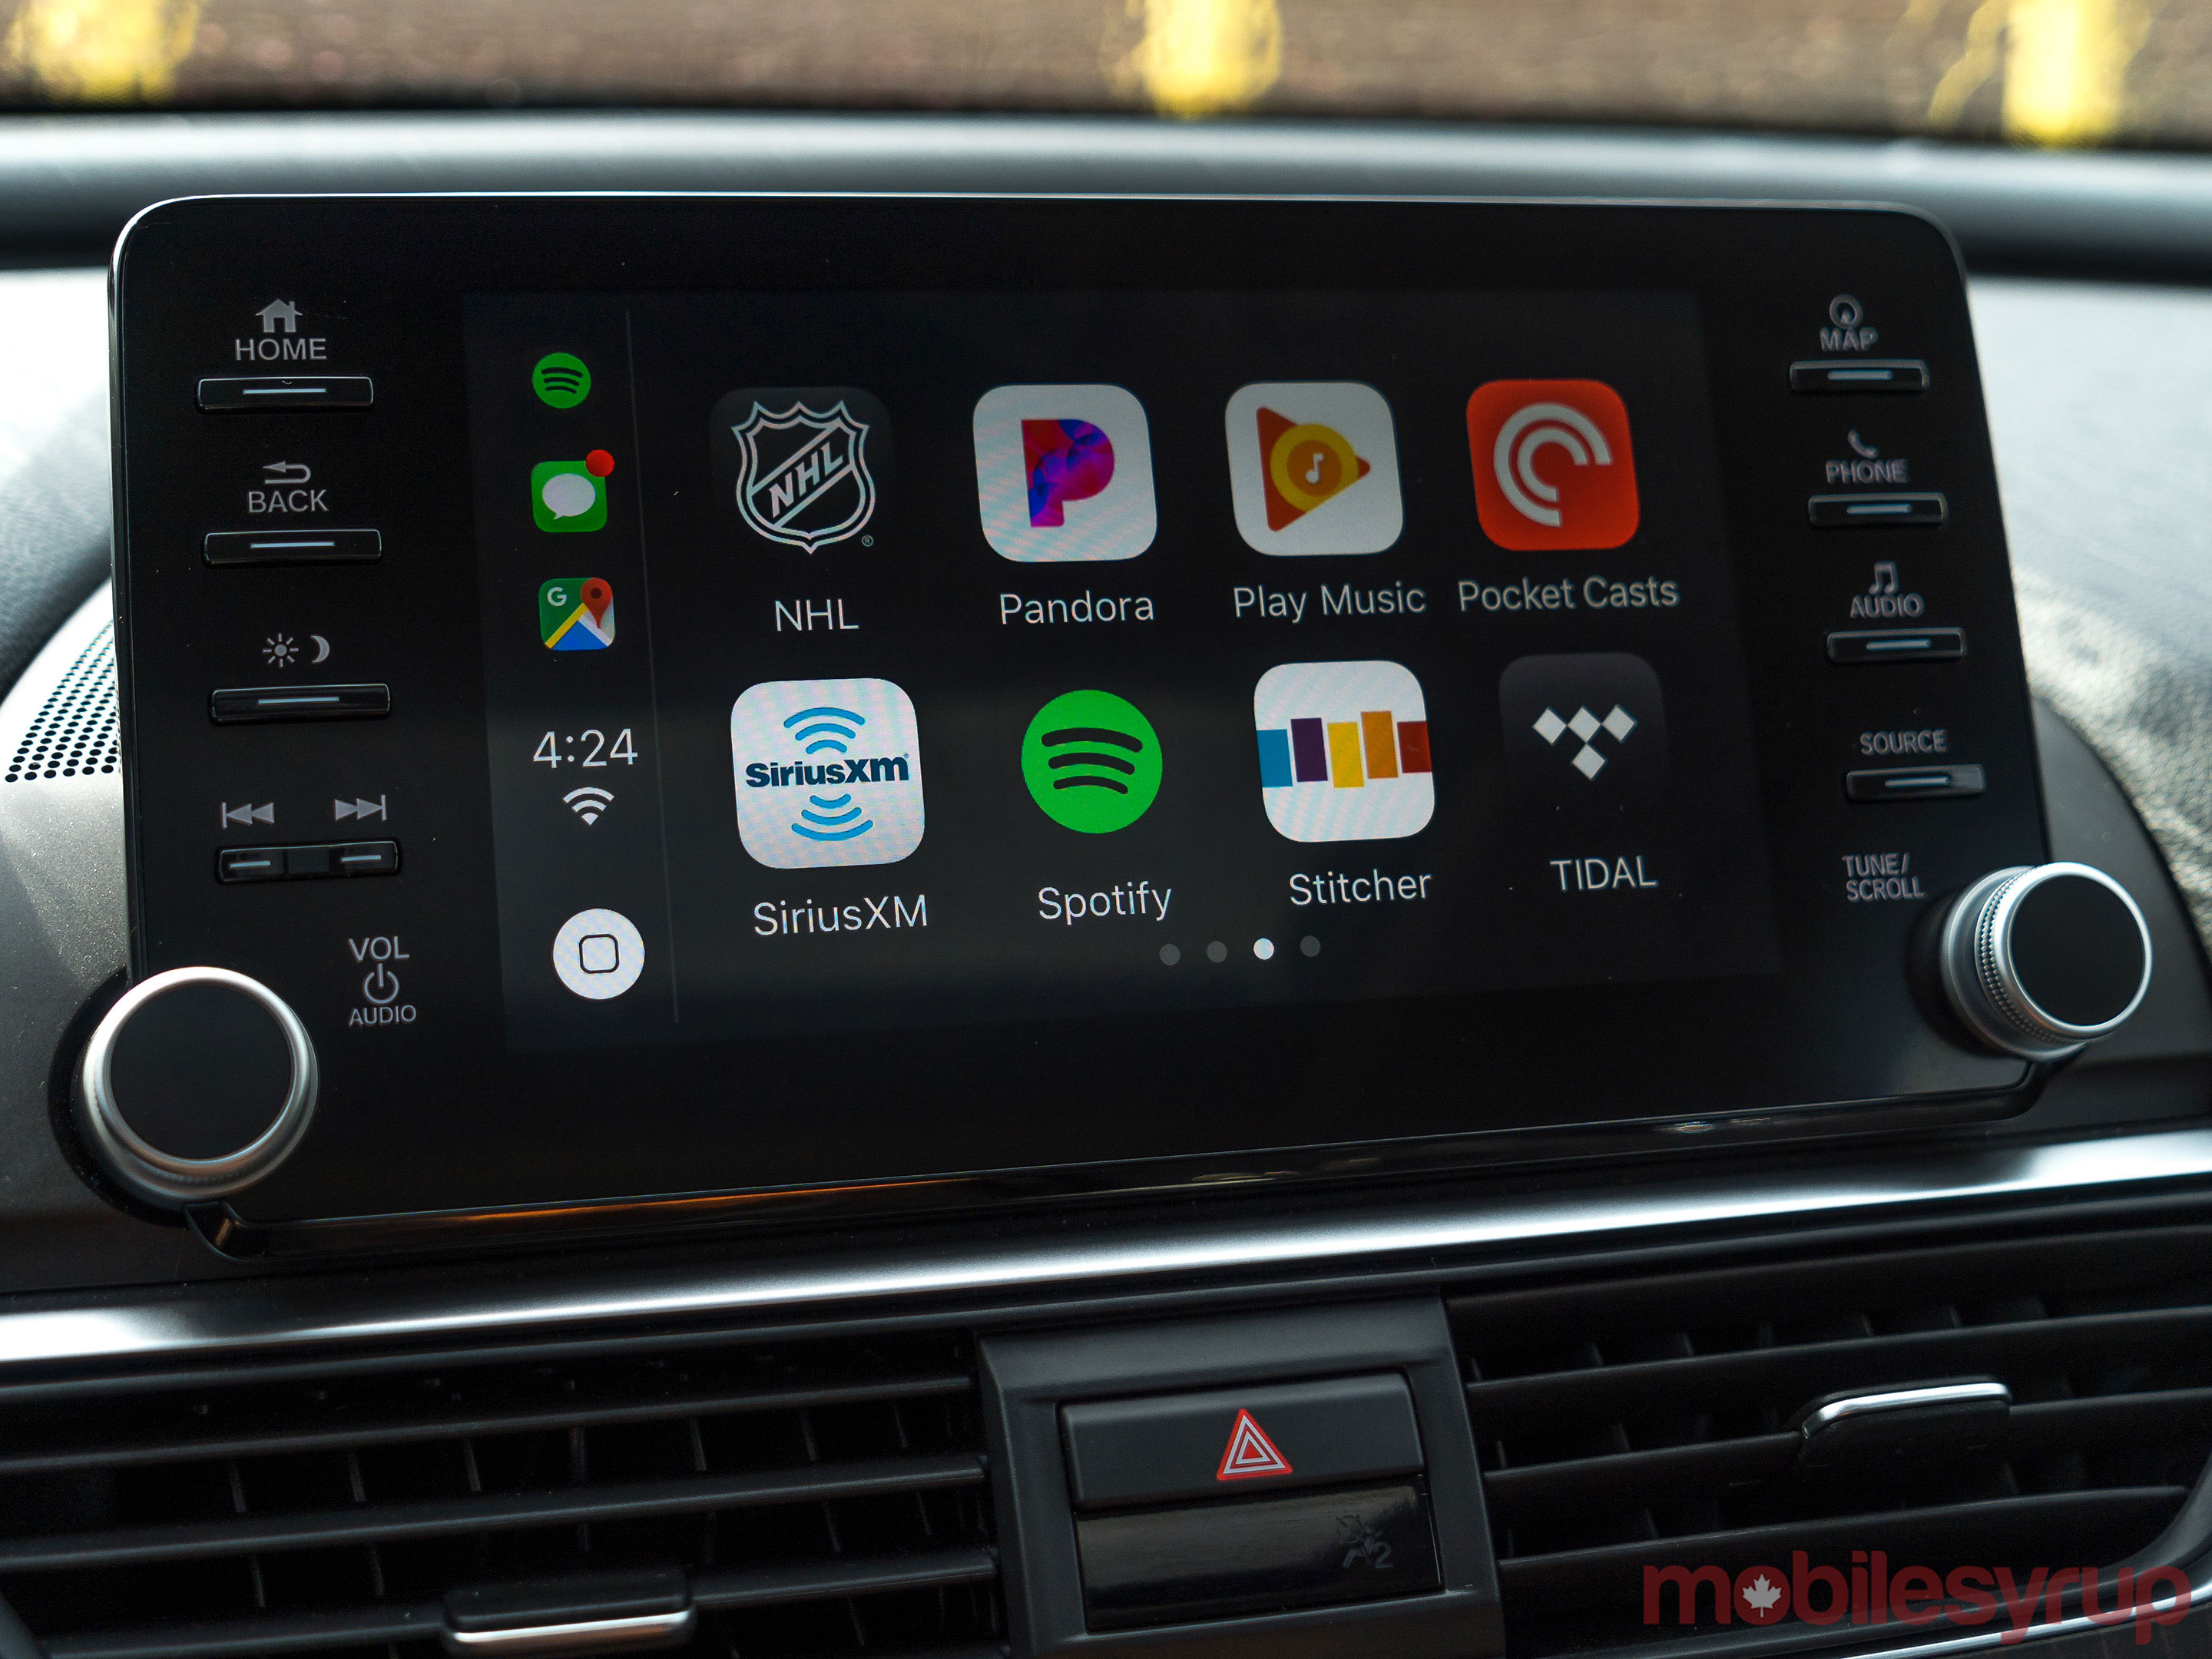 2019 HondaLink Infotainment Review: Looking better all the time